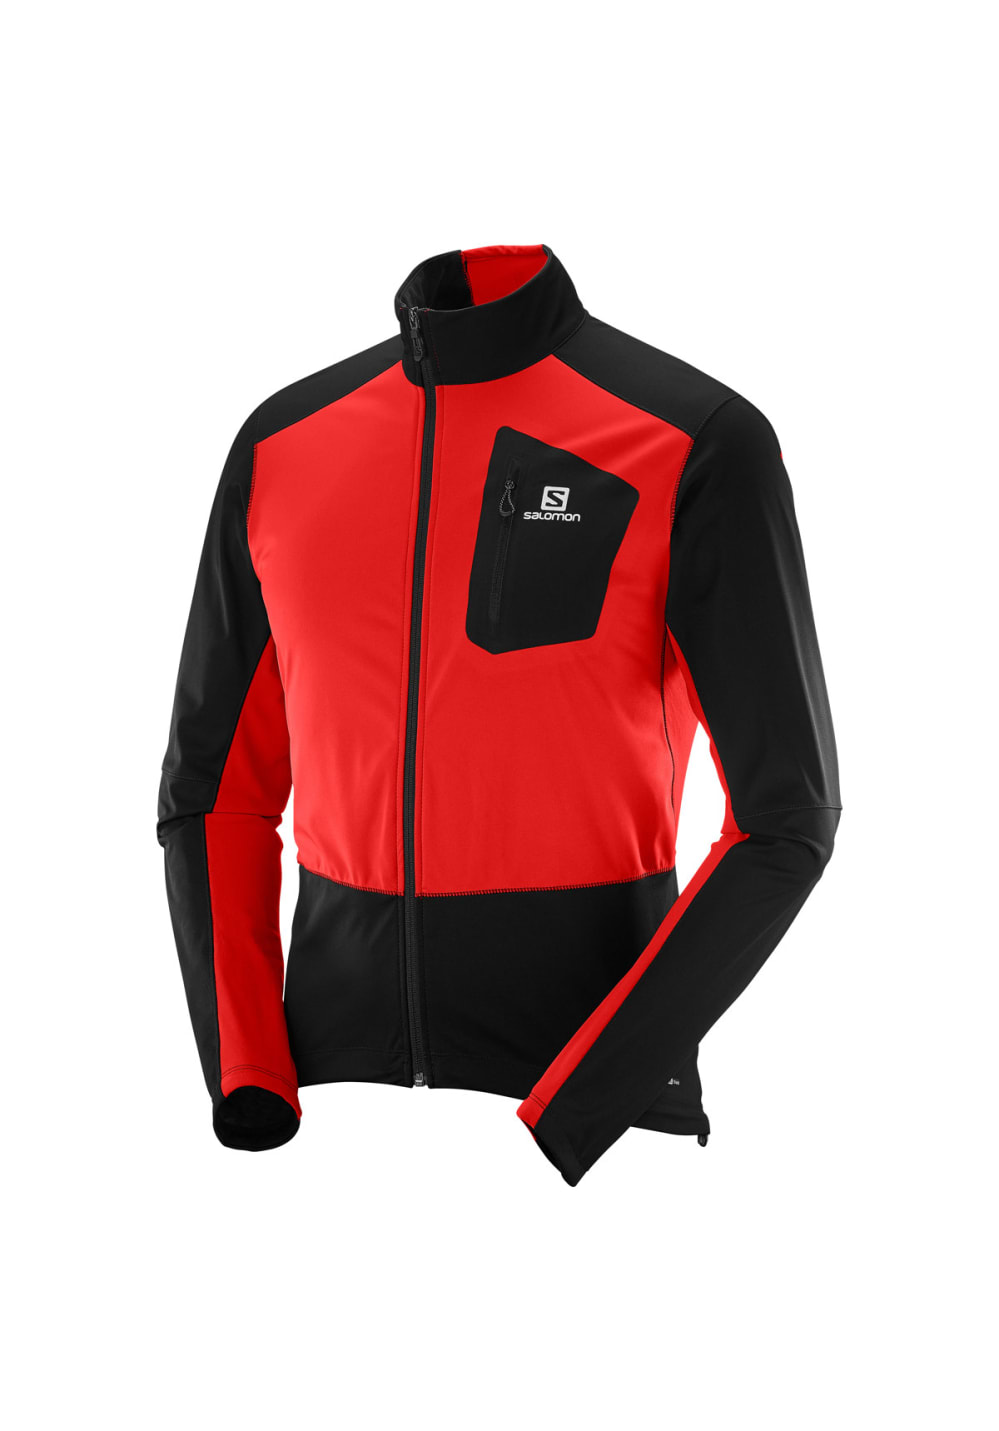 san francisco 86e2a 1a317 Salomon Equipe Softshell Jacket - Running jackets for Men - Red